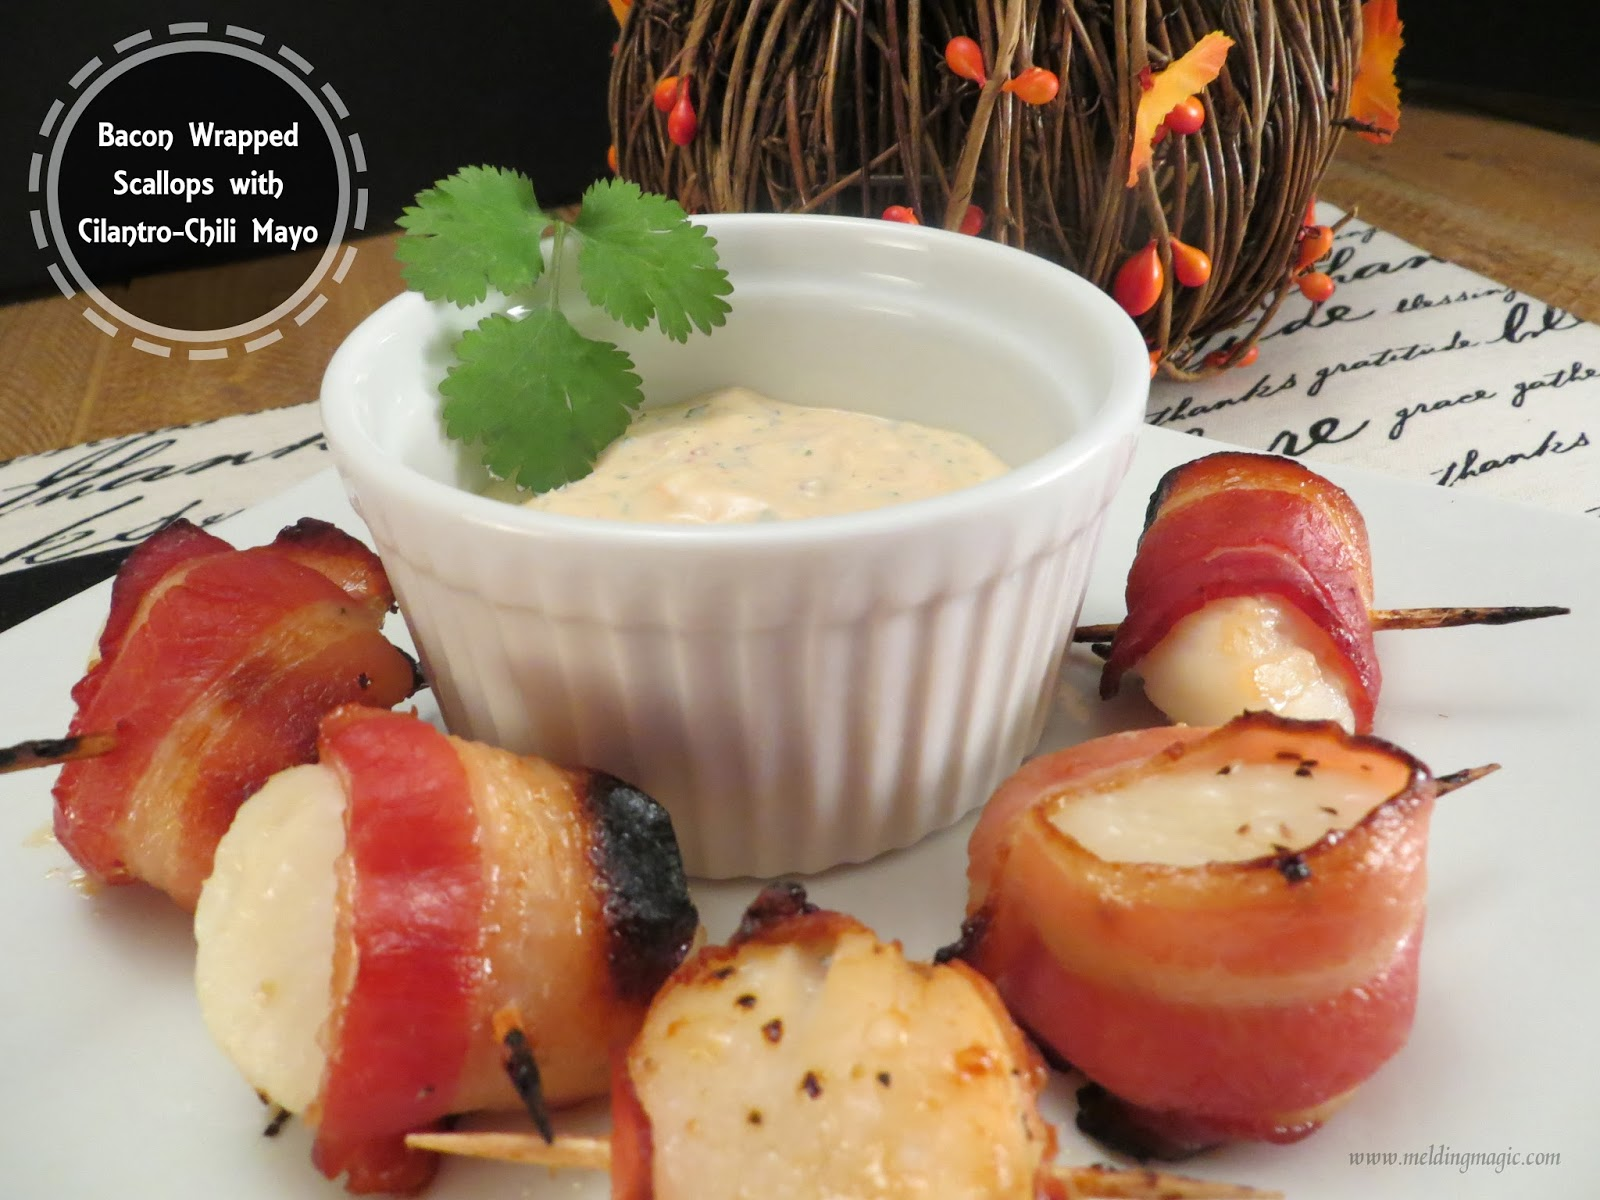 Bacon Wrapped Scallops with Spicy Cilantro Mayonnaise